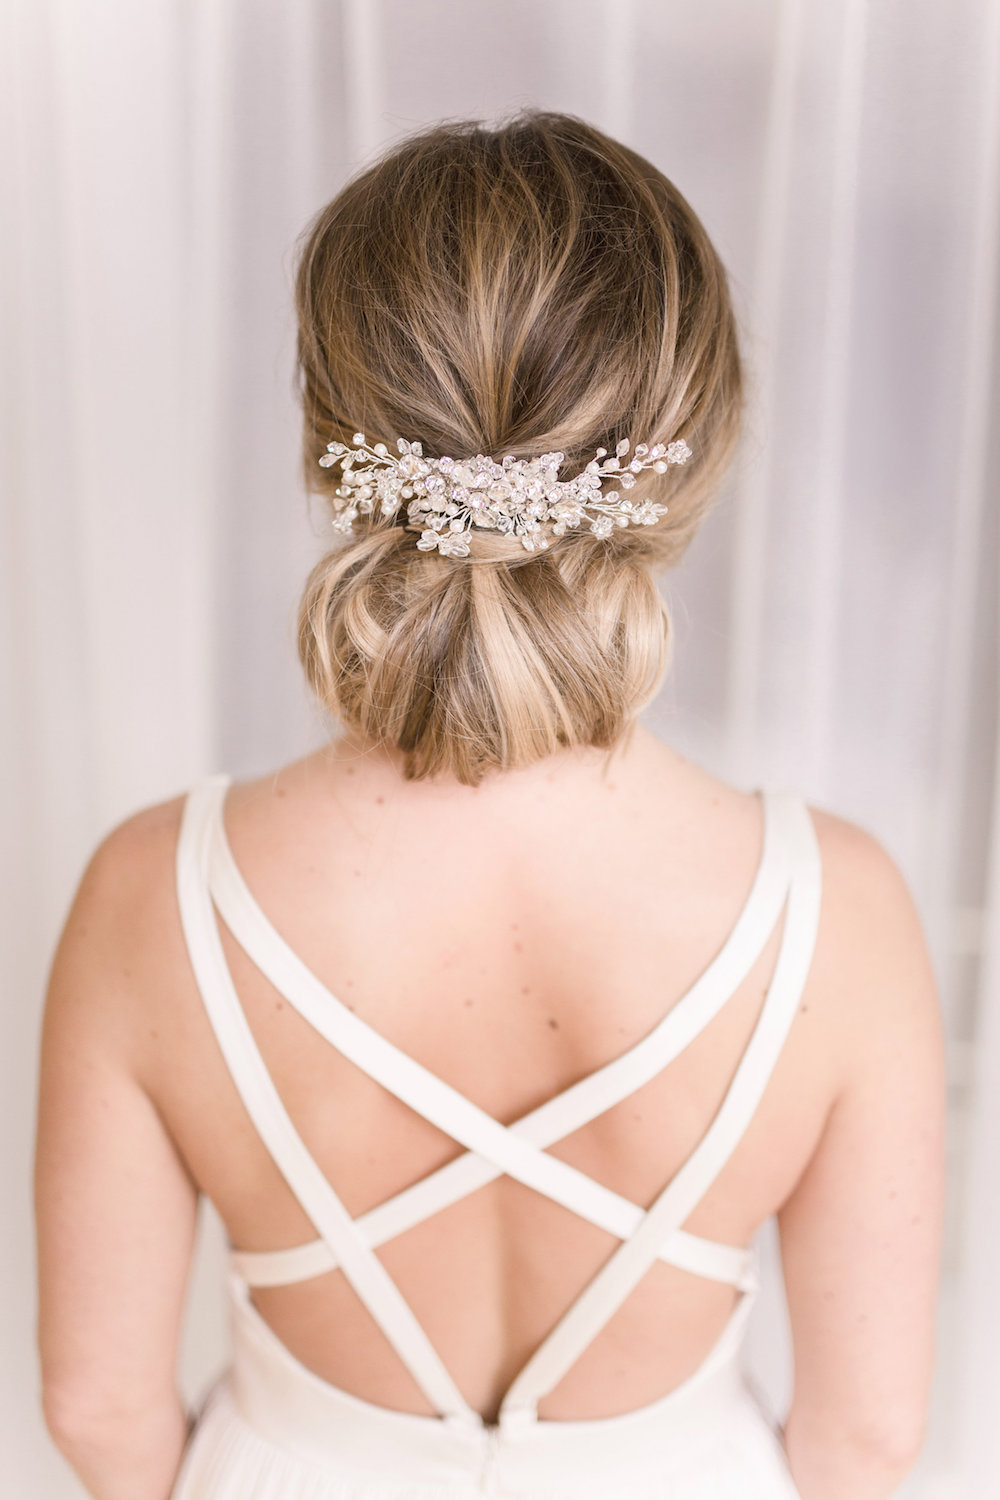 Tousled Chignon Wedding Hair - Winnipeg Weddings